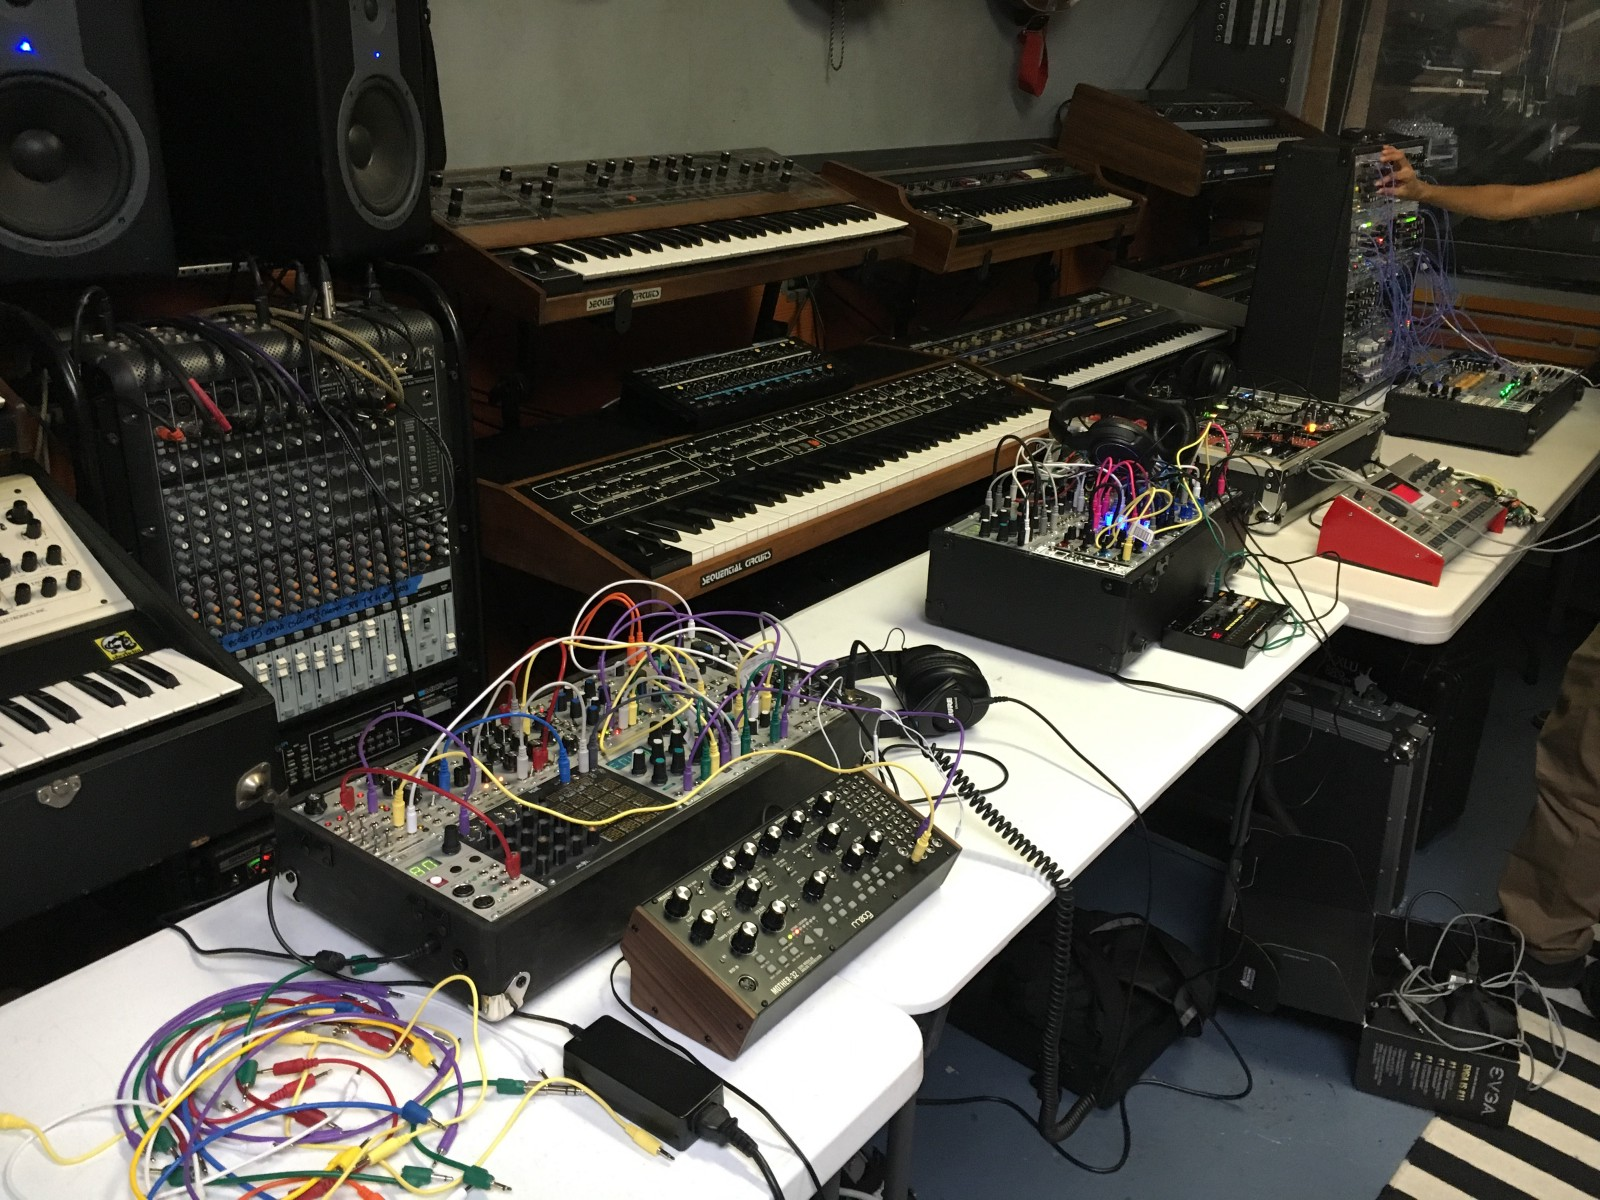 Showcase at the Vintage Synthesizer Museum